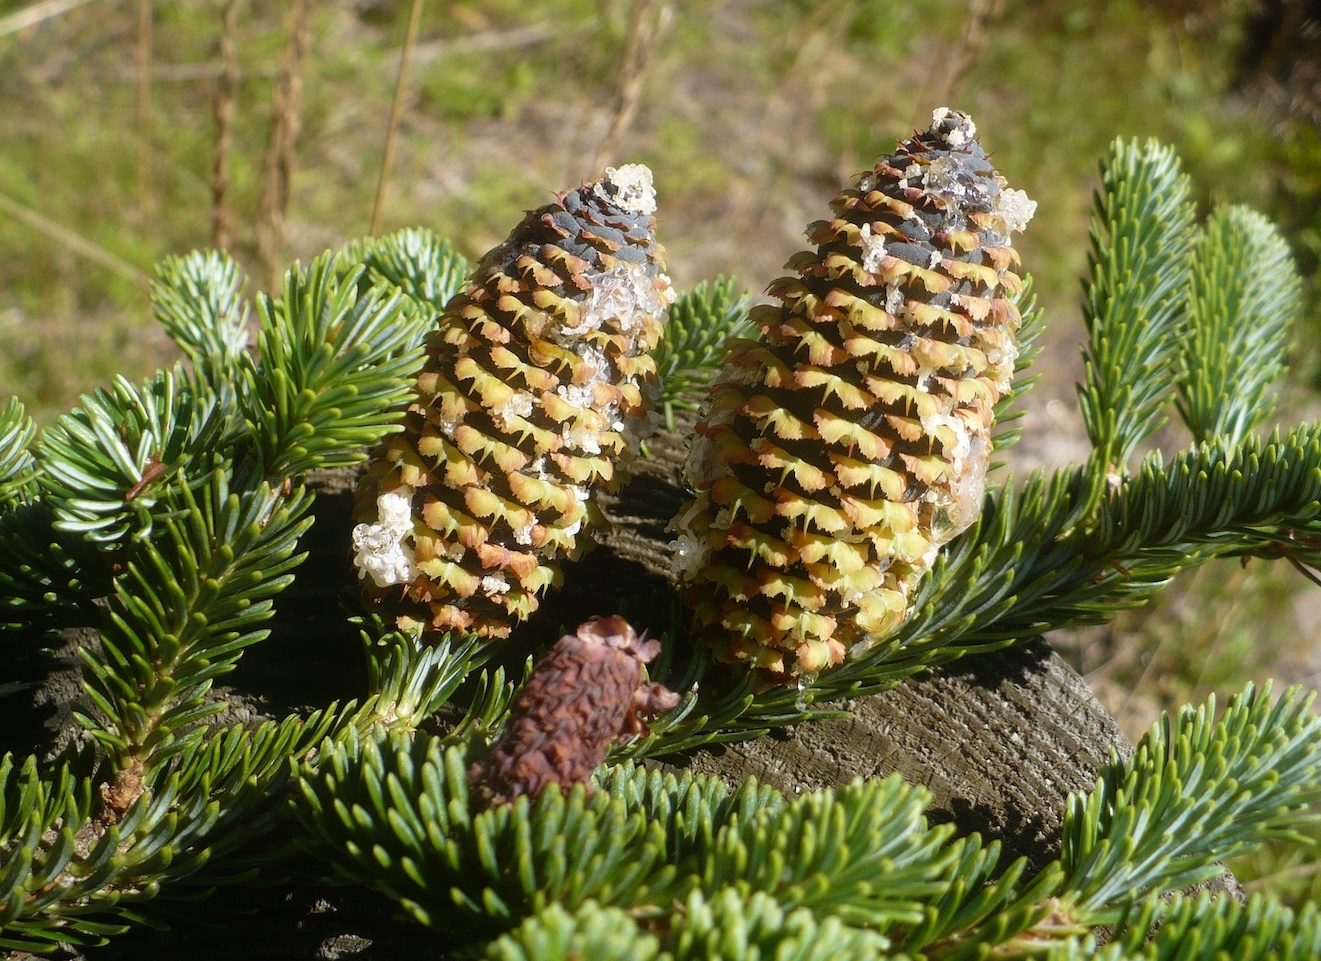 The Scientific Name is Abies fraseri. You will likely hear them called Fraser Fir, Southern Balsam, She Balsam. This picture shows the Female cones and needles of Abies fraseri